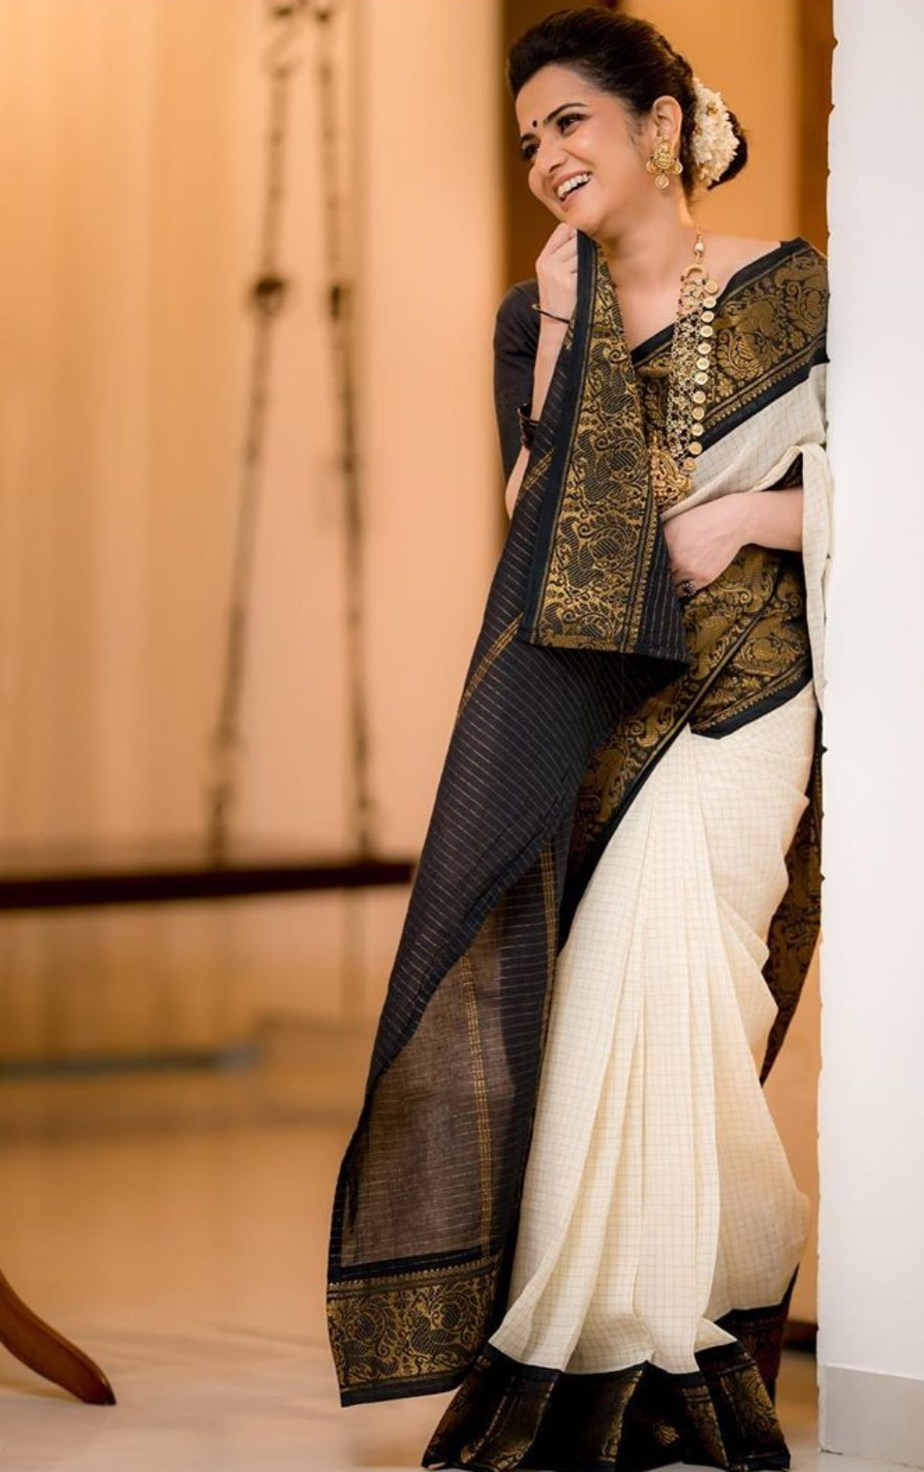 Dhivyadharshini in black and white saree by virupa